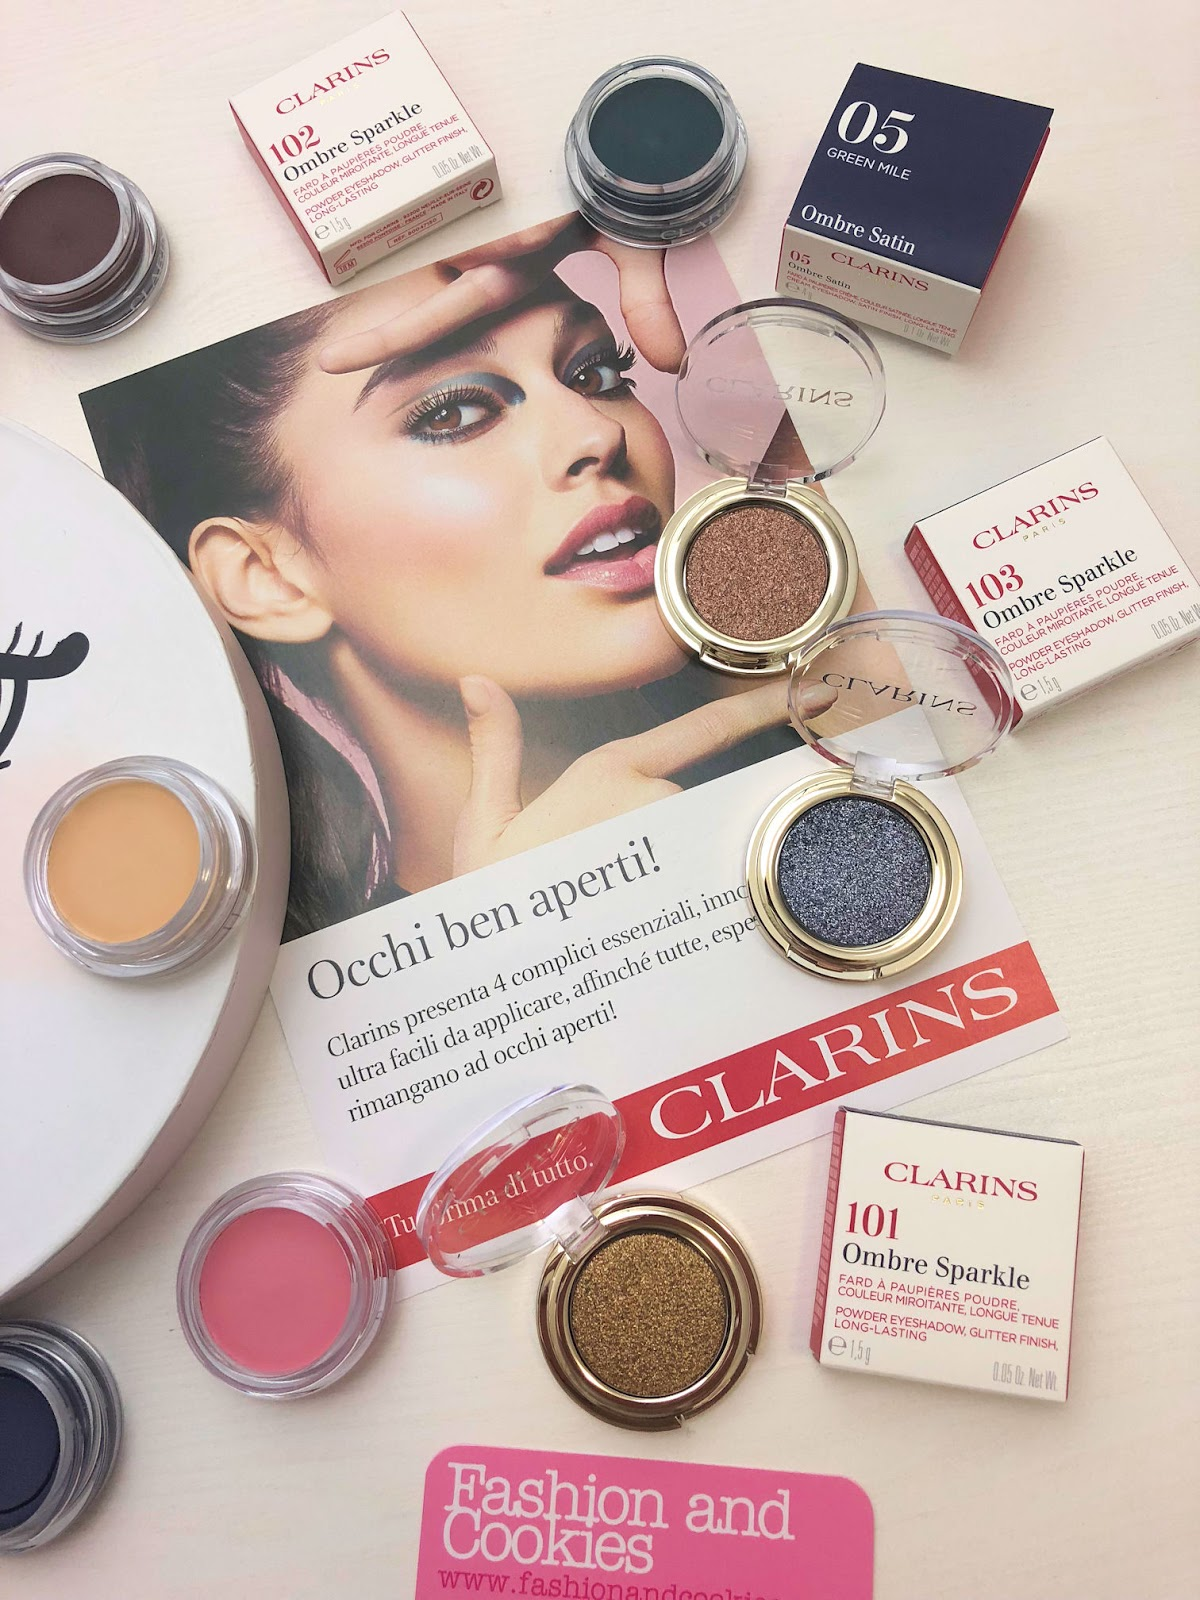 Clarins: occhi ben aperti per la collezione makeup Primavera 2019 su Fashion and Cookies beauty blog